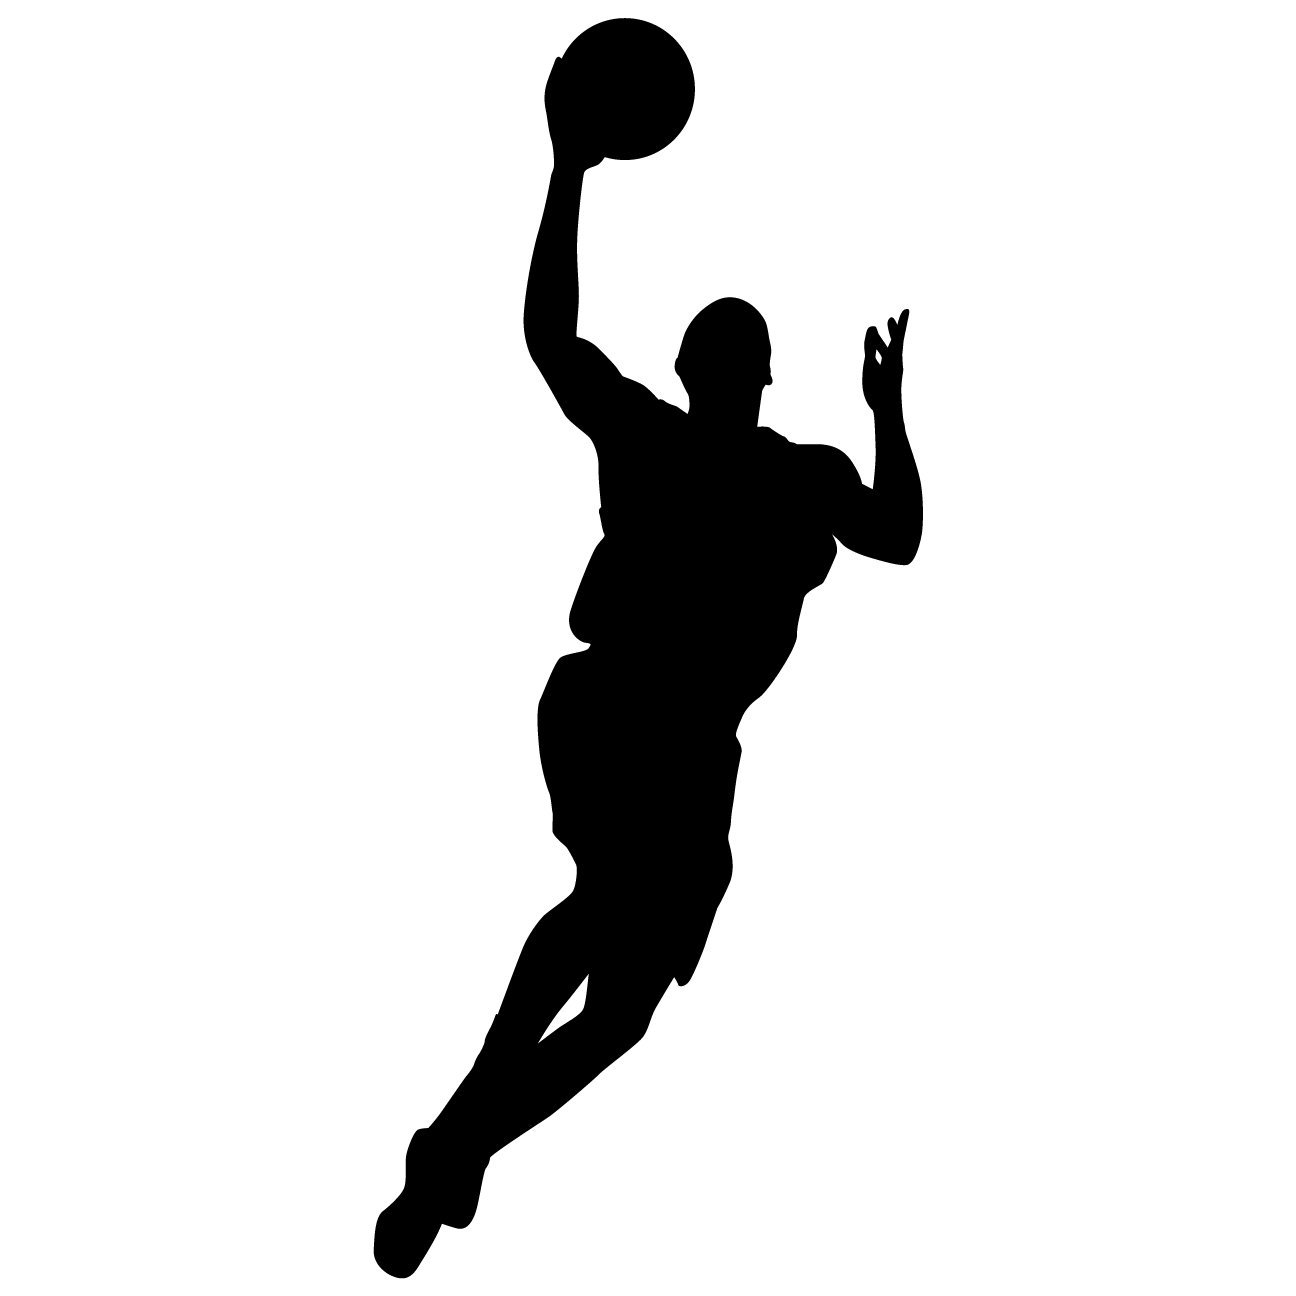 Buy Basketball Wall Decal Sticker 33 Decal Stickers And Mural For Kids Boys Girls Room And Bedroom Sport Vinyl Decor Wall Art For Home Decor And Decoration Basketball Player Silhouette